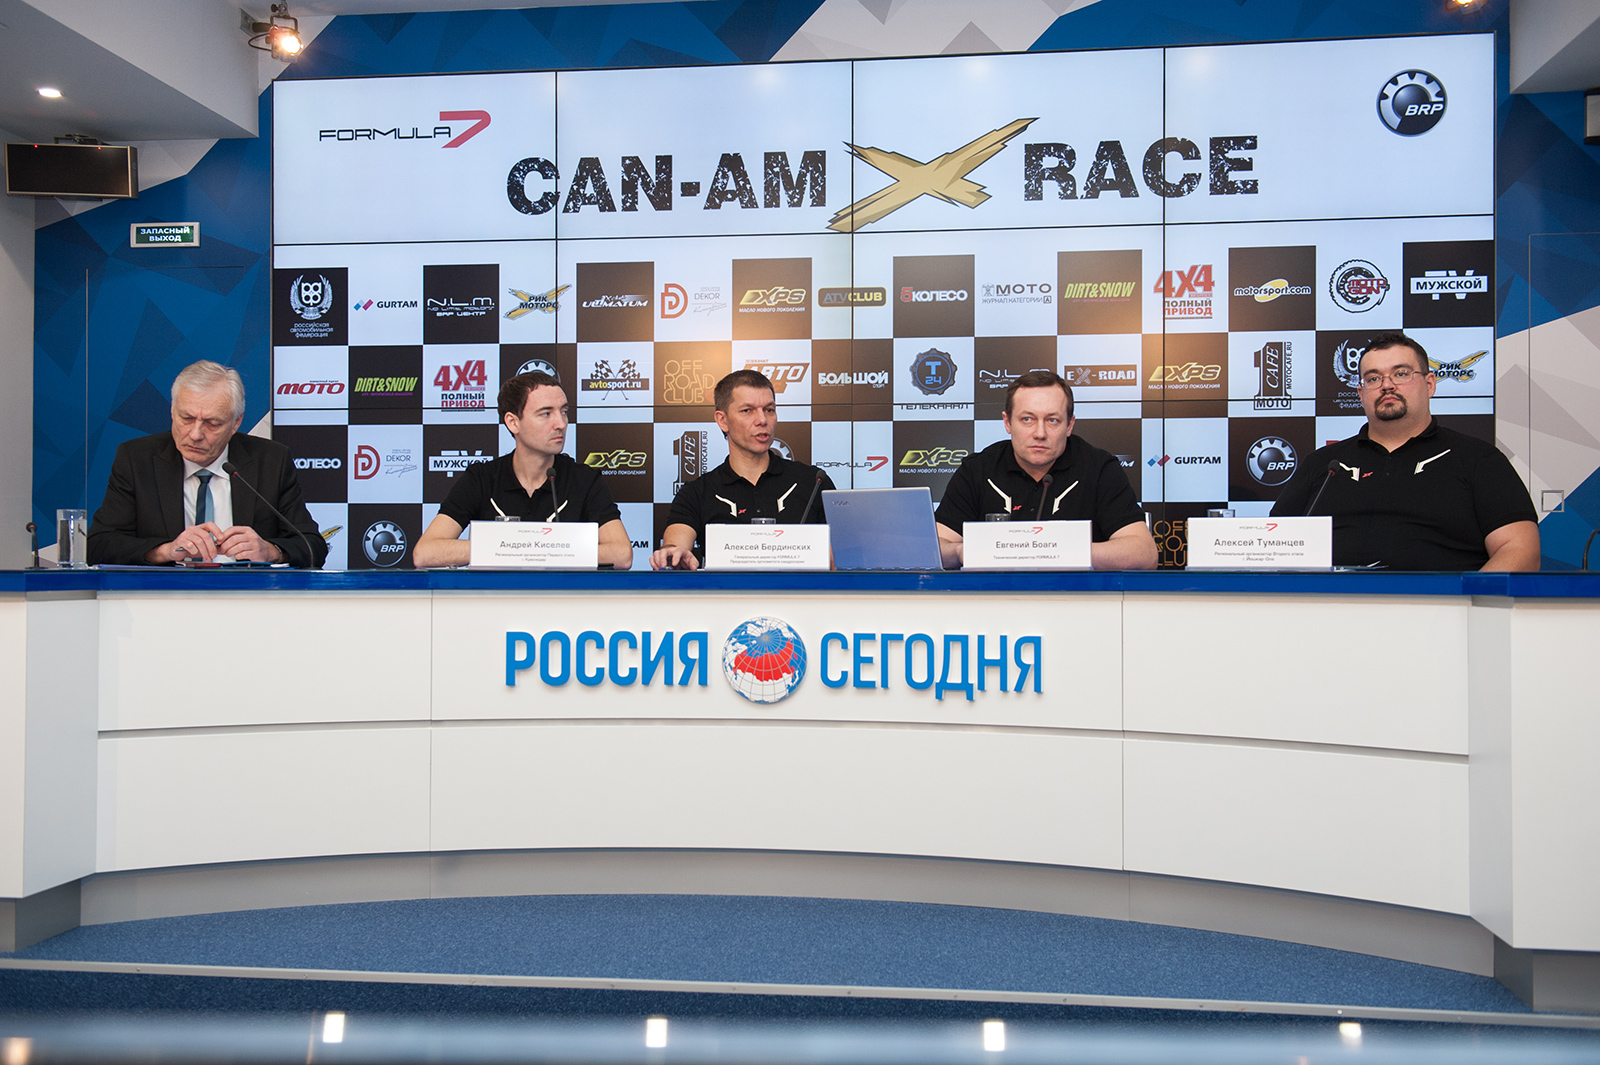 Can-Am X Race: Ветер перемен